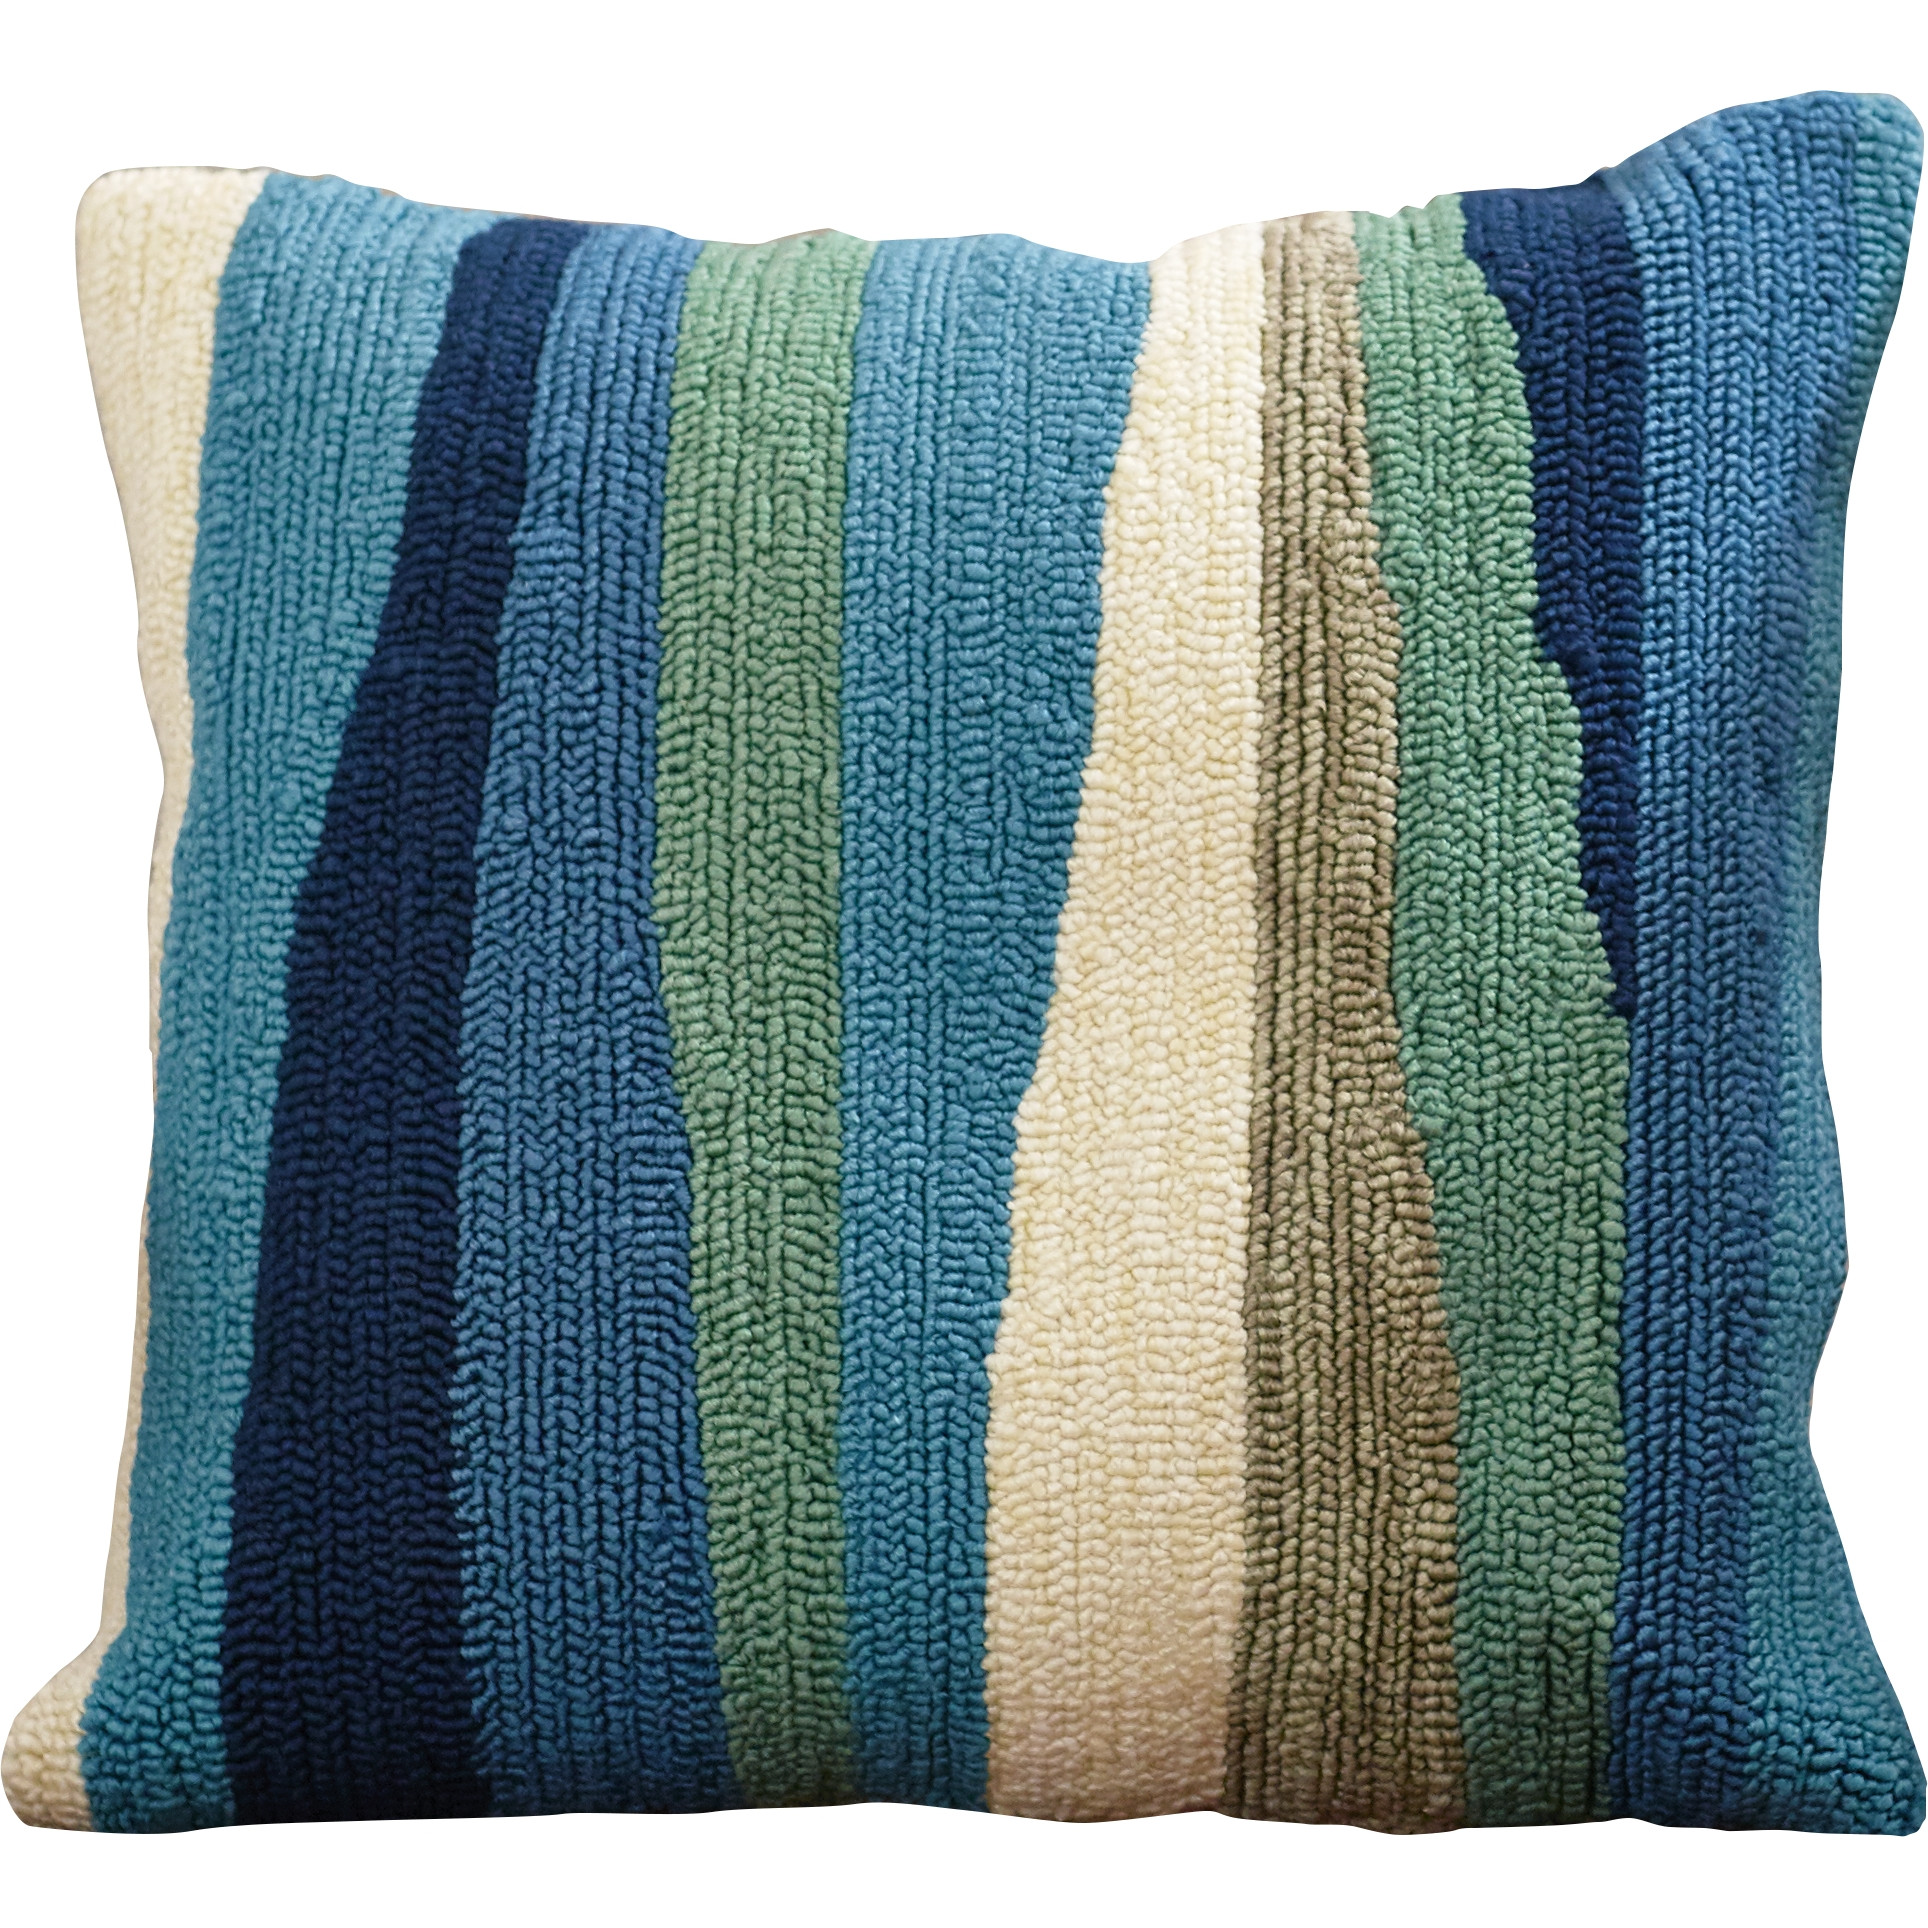 Extraordinary outdoor throw pillows for outdoor design with cheap outdoor throw pillows